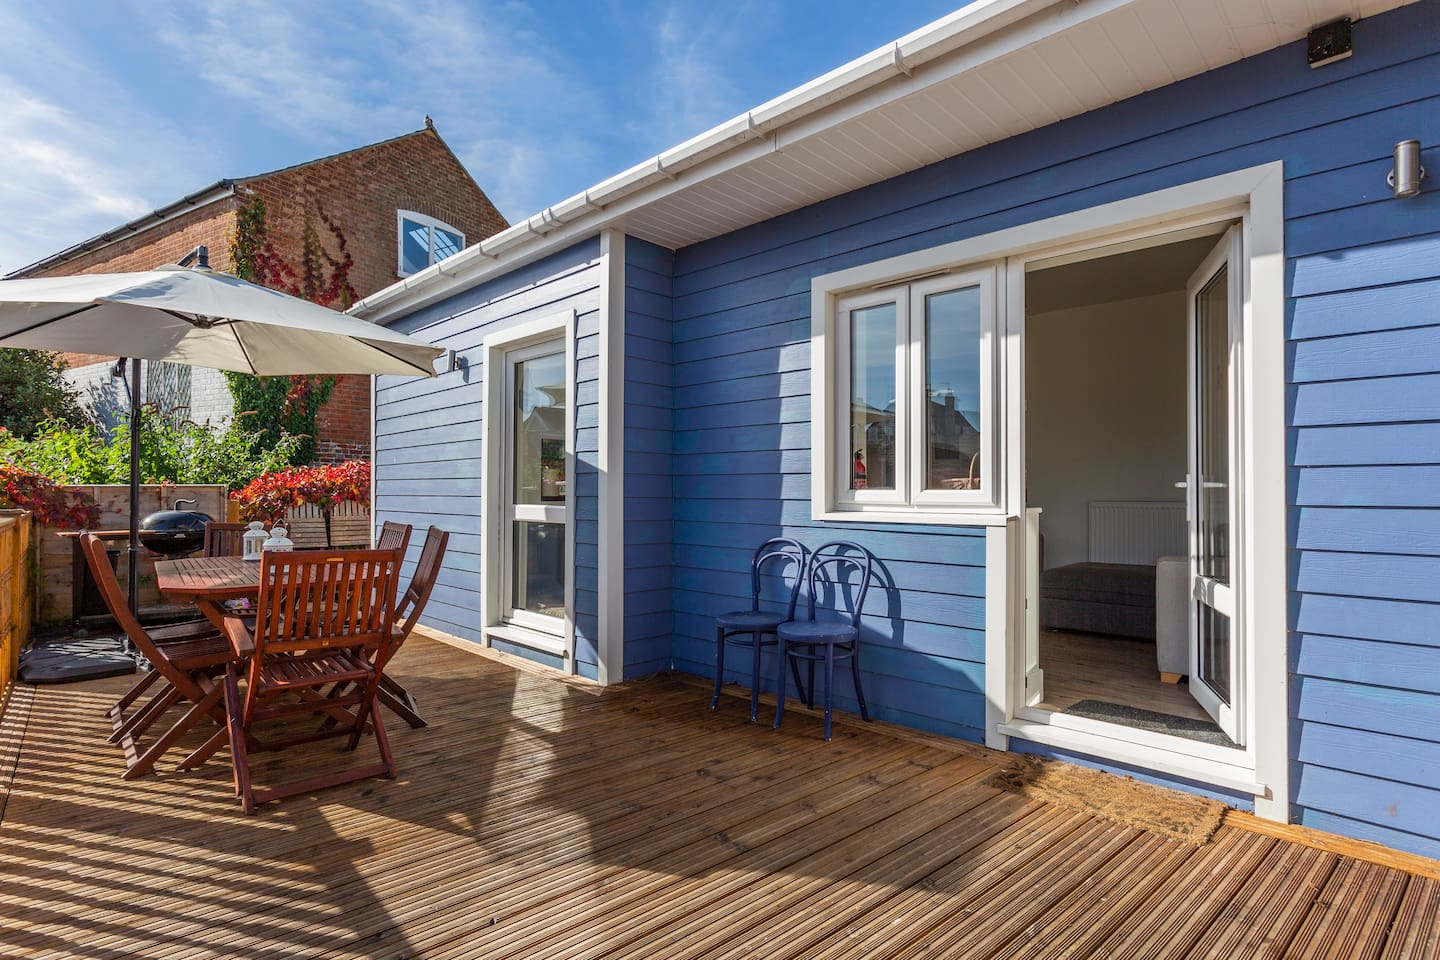 Tucked away in the heart of Cowes: a private space with a sun-trap garden.